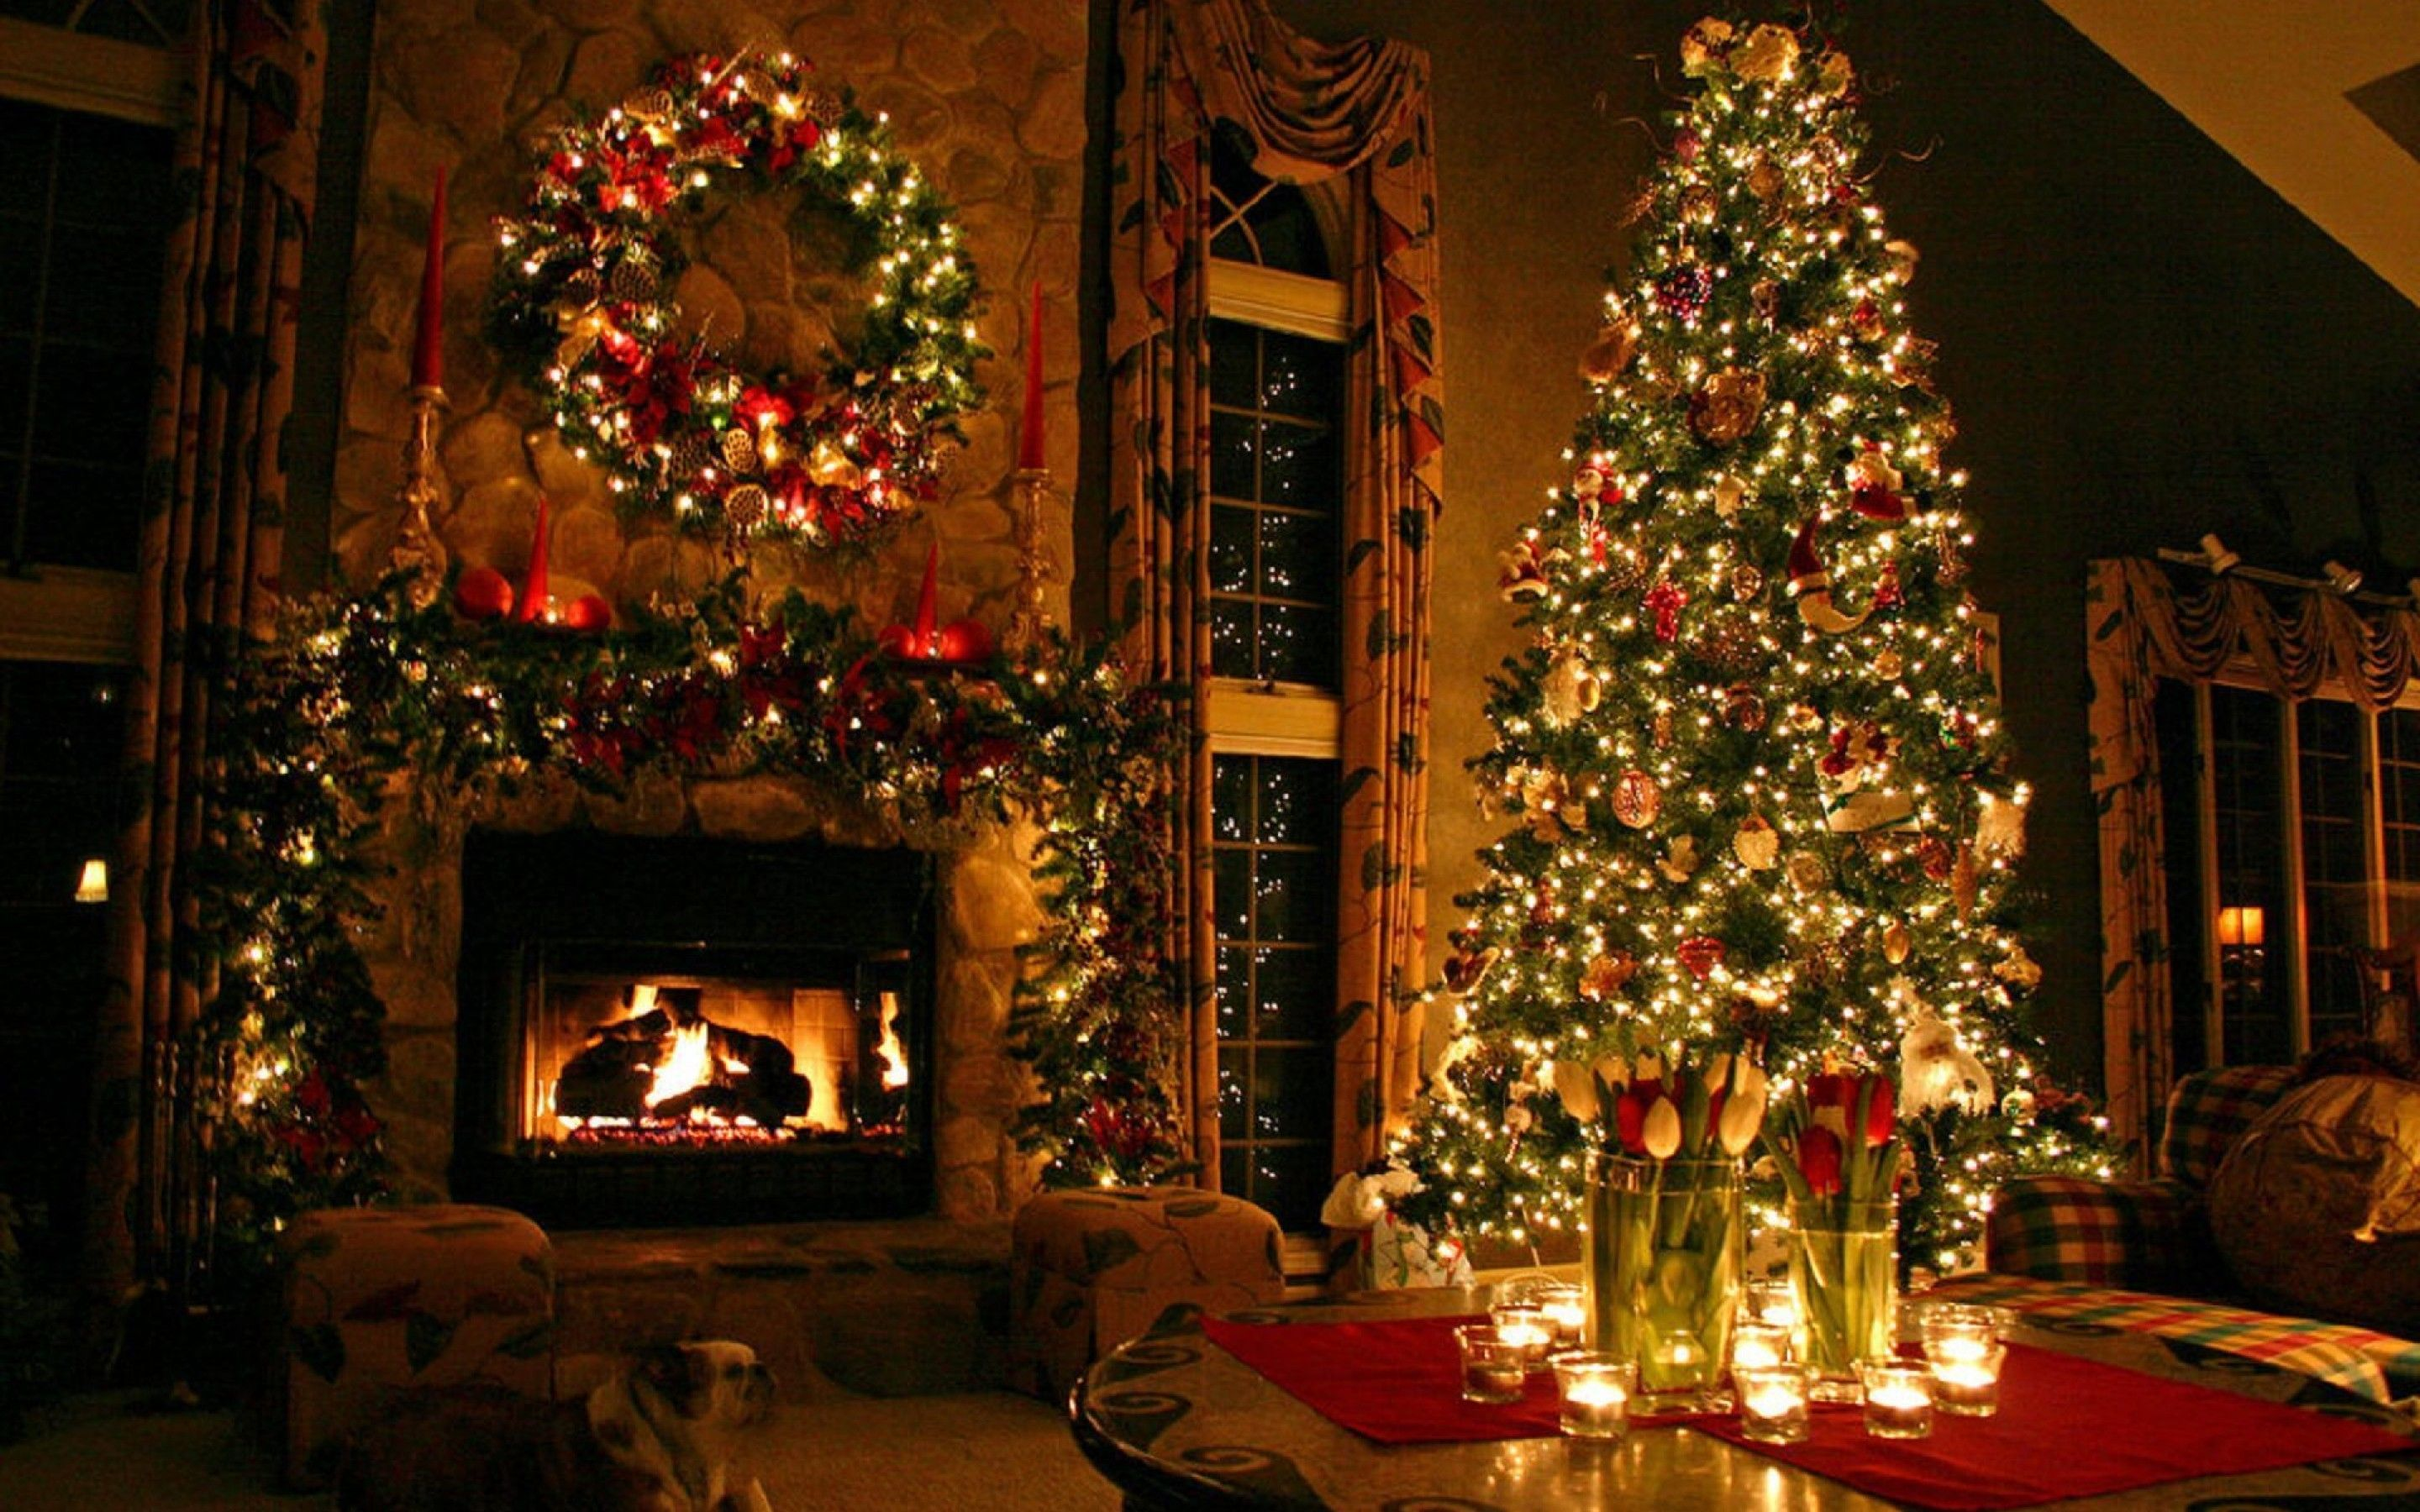 2880x1800 82+ Christmas Hd Wallpapers on WallpaperPlay